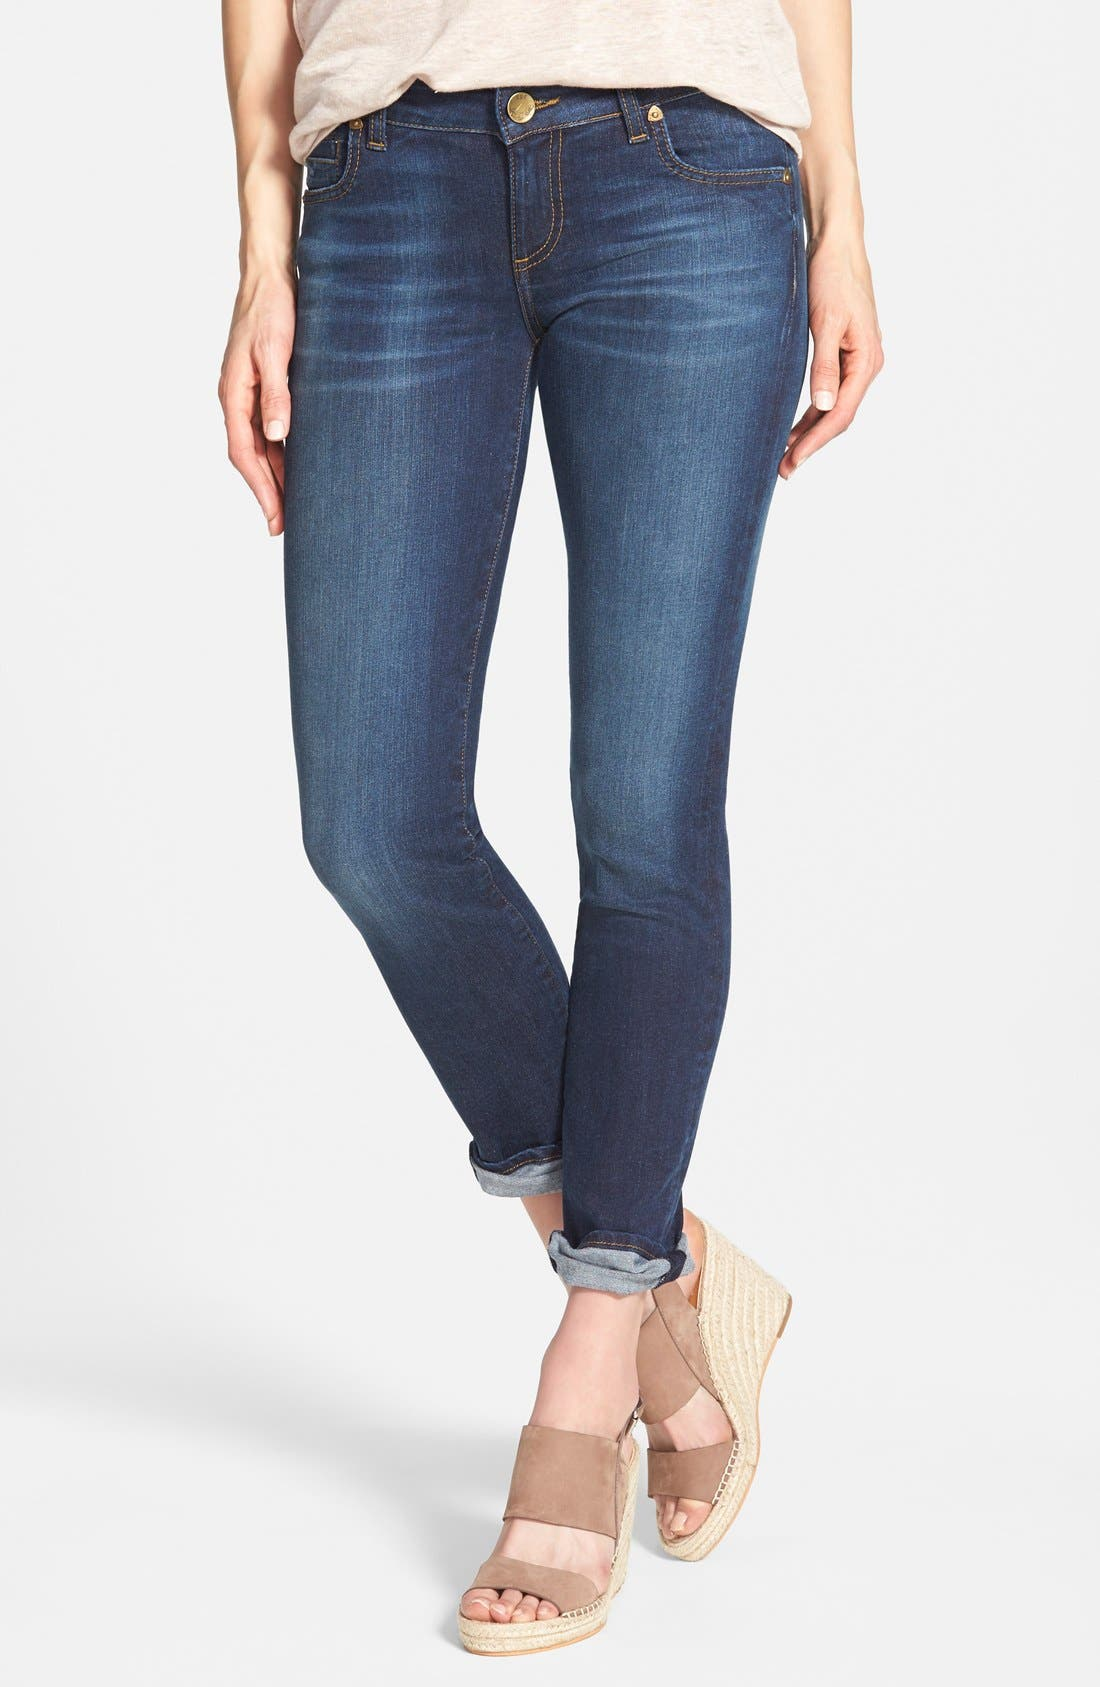 Alternate Image 1 Selected - KUT from the Kloth 'Catherine' Boyfriend Jeans (Easily) (Regular & Petite)